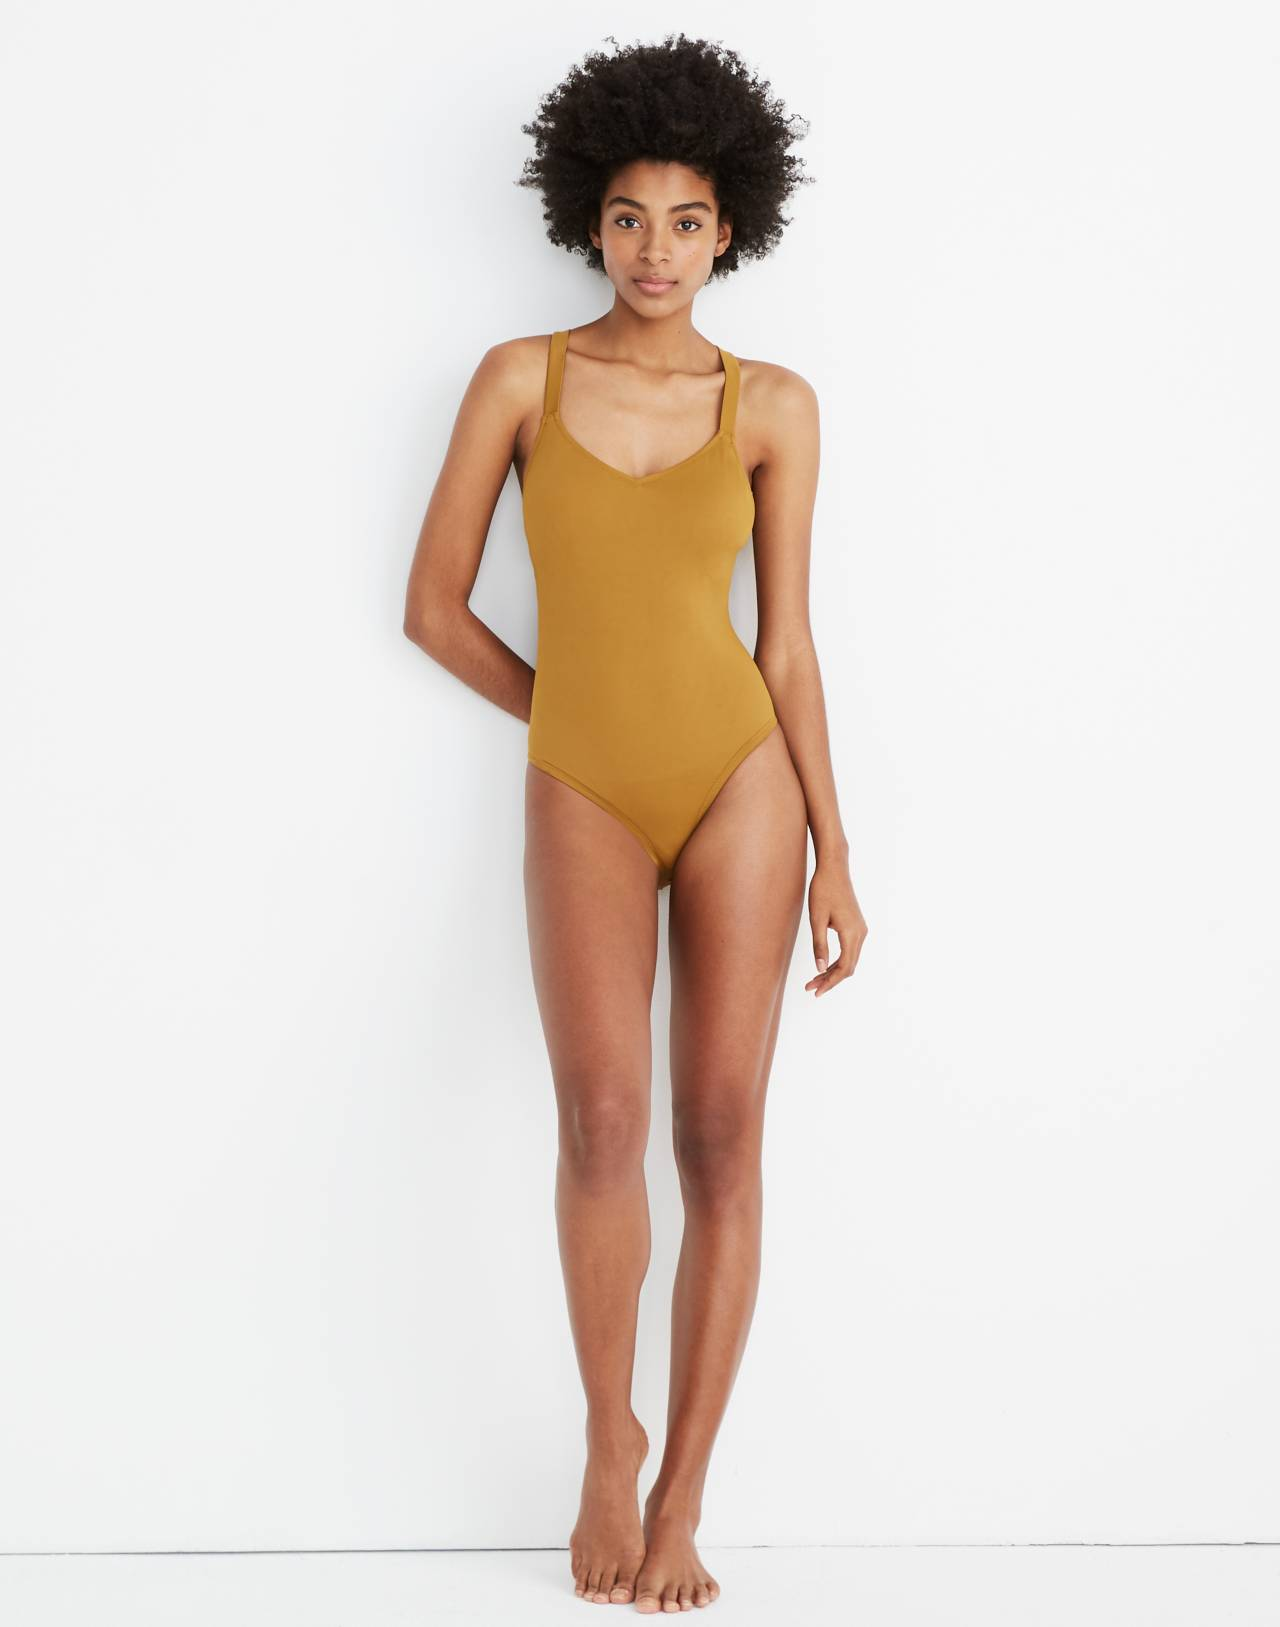 Madewell Second Wave Crisscross One-Piece Swimsuit in distant olive image 1